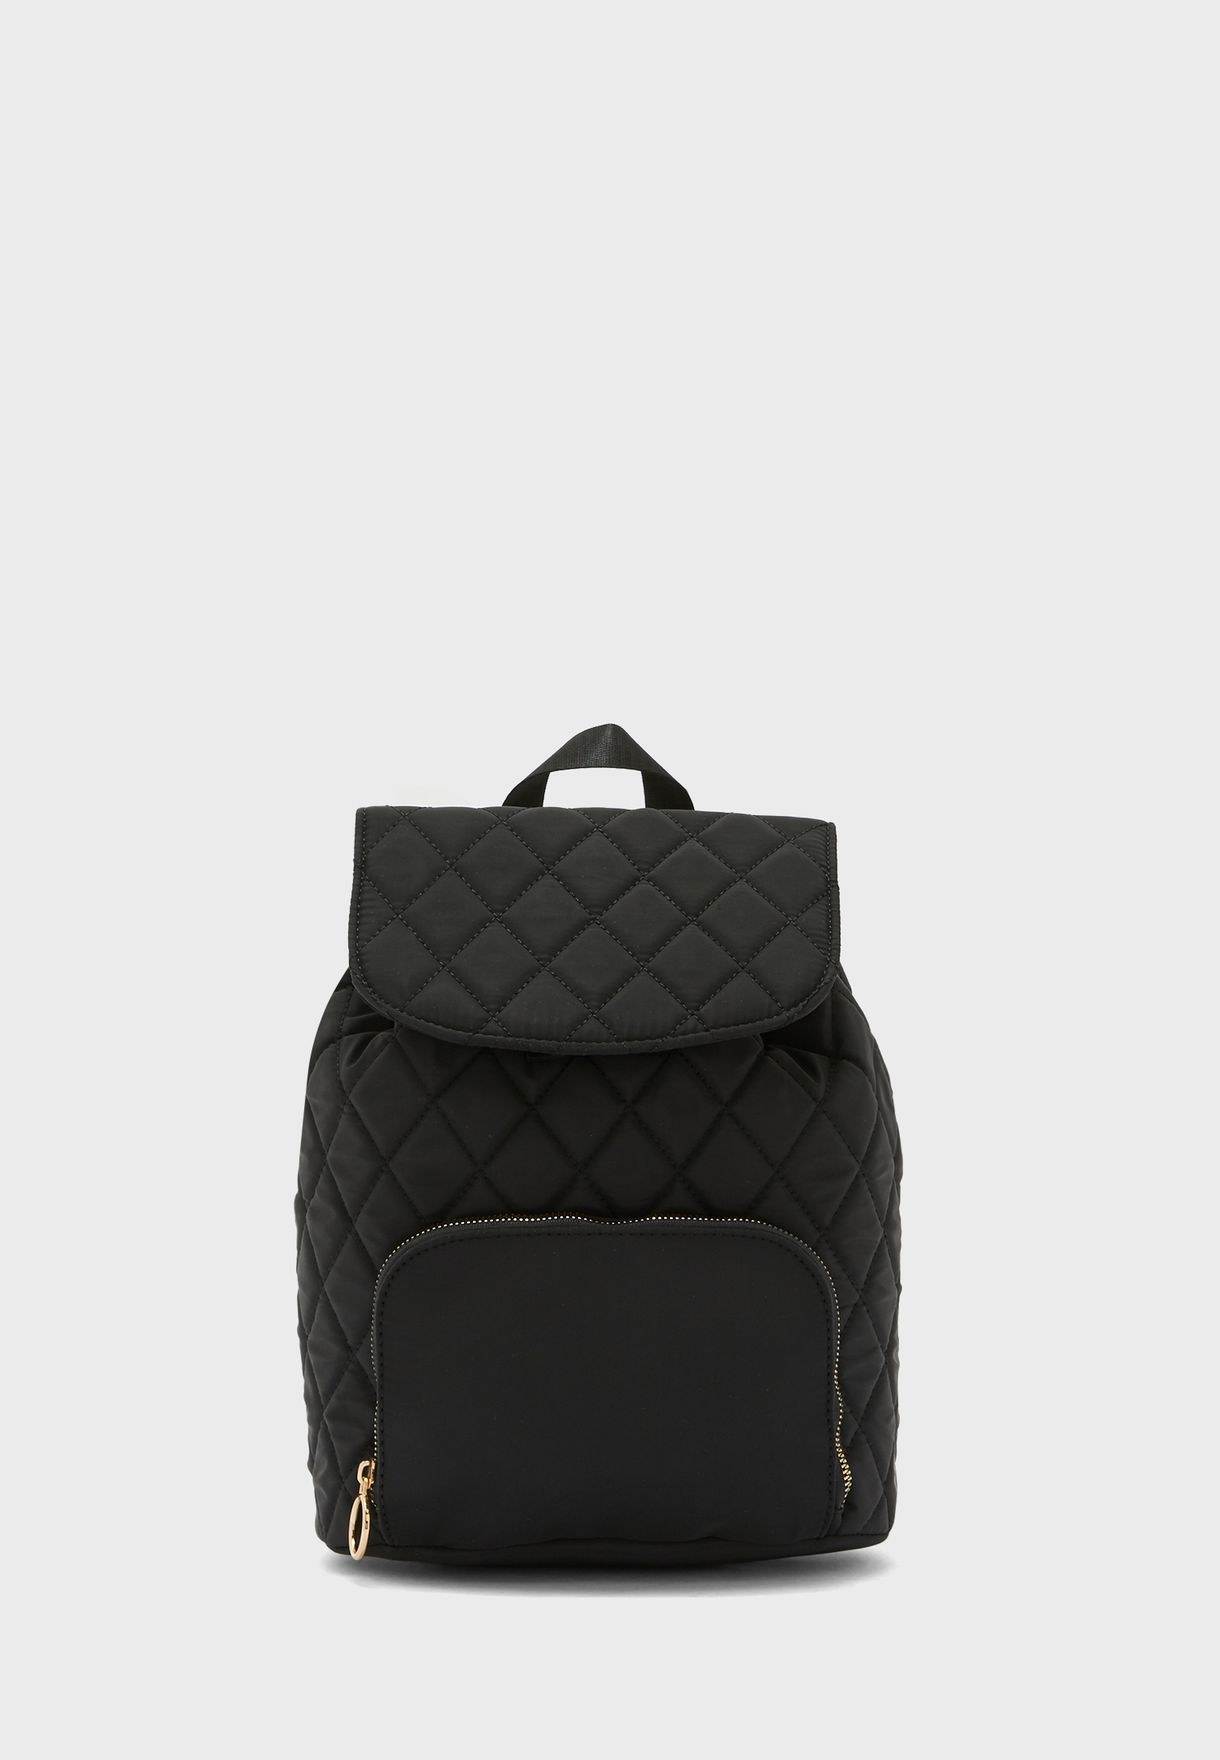 Ellie Nylon Quilted Backpack